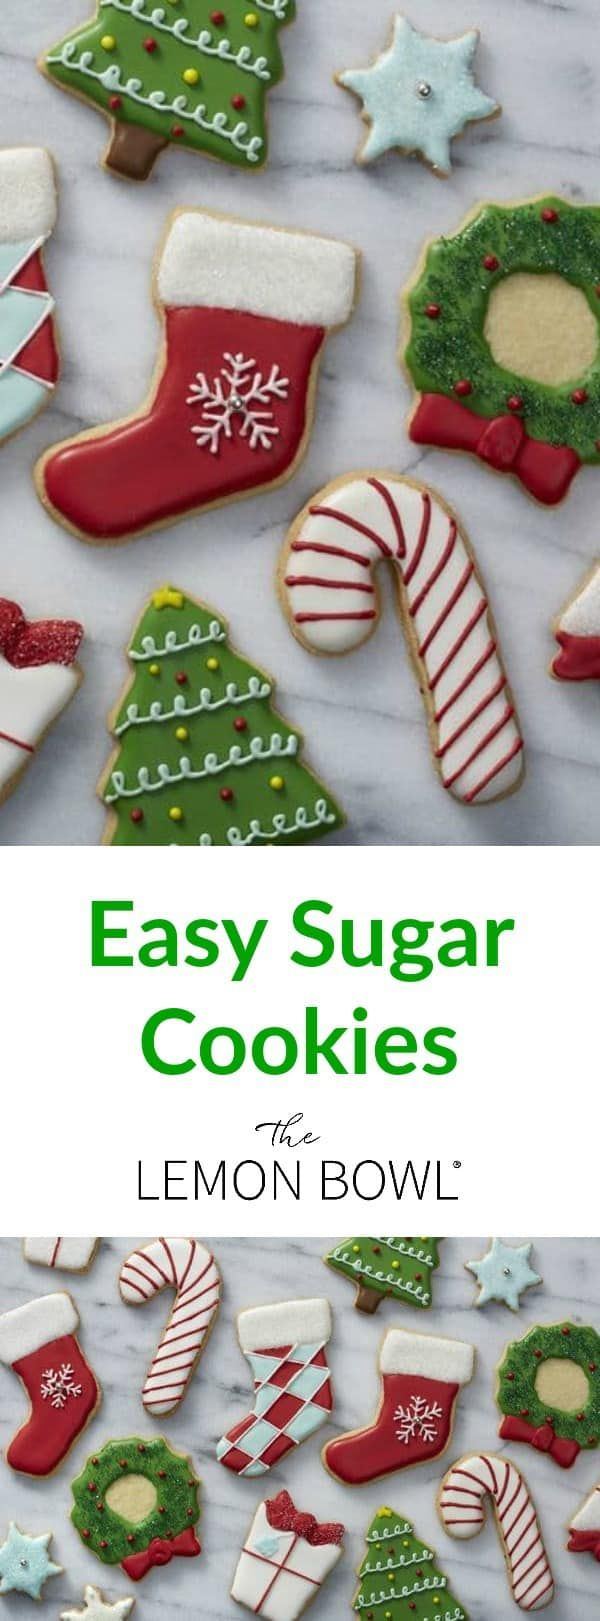 A Christmas cookie classic, these adorable sugar cookie cutouts are perfect for holiday entertaining, homemade edible gifts or leaving our for Santa.  ♛BOUTIQUE CHIC♛